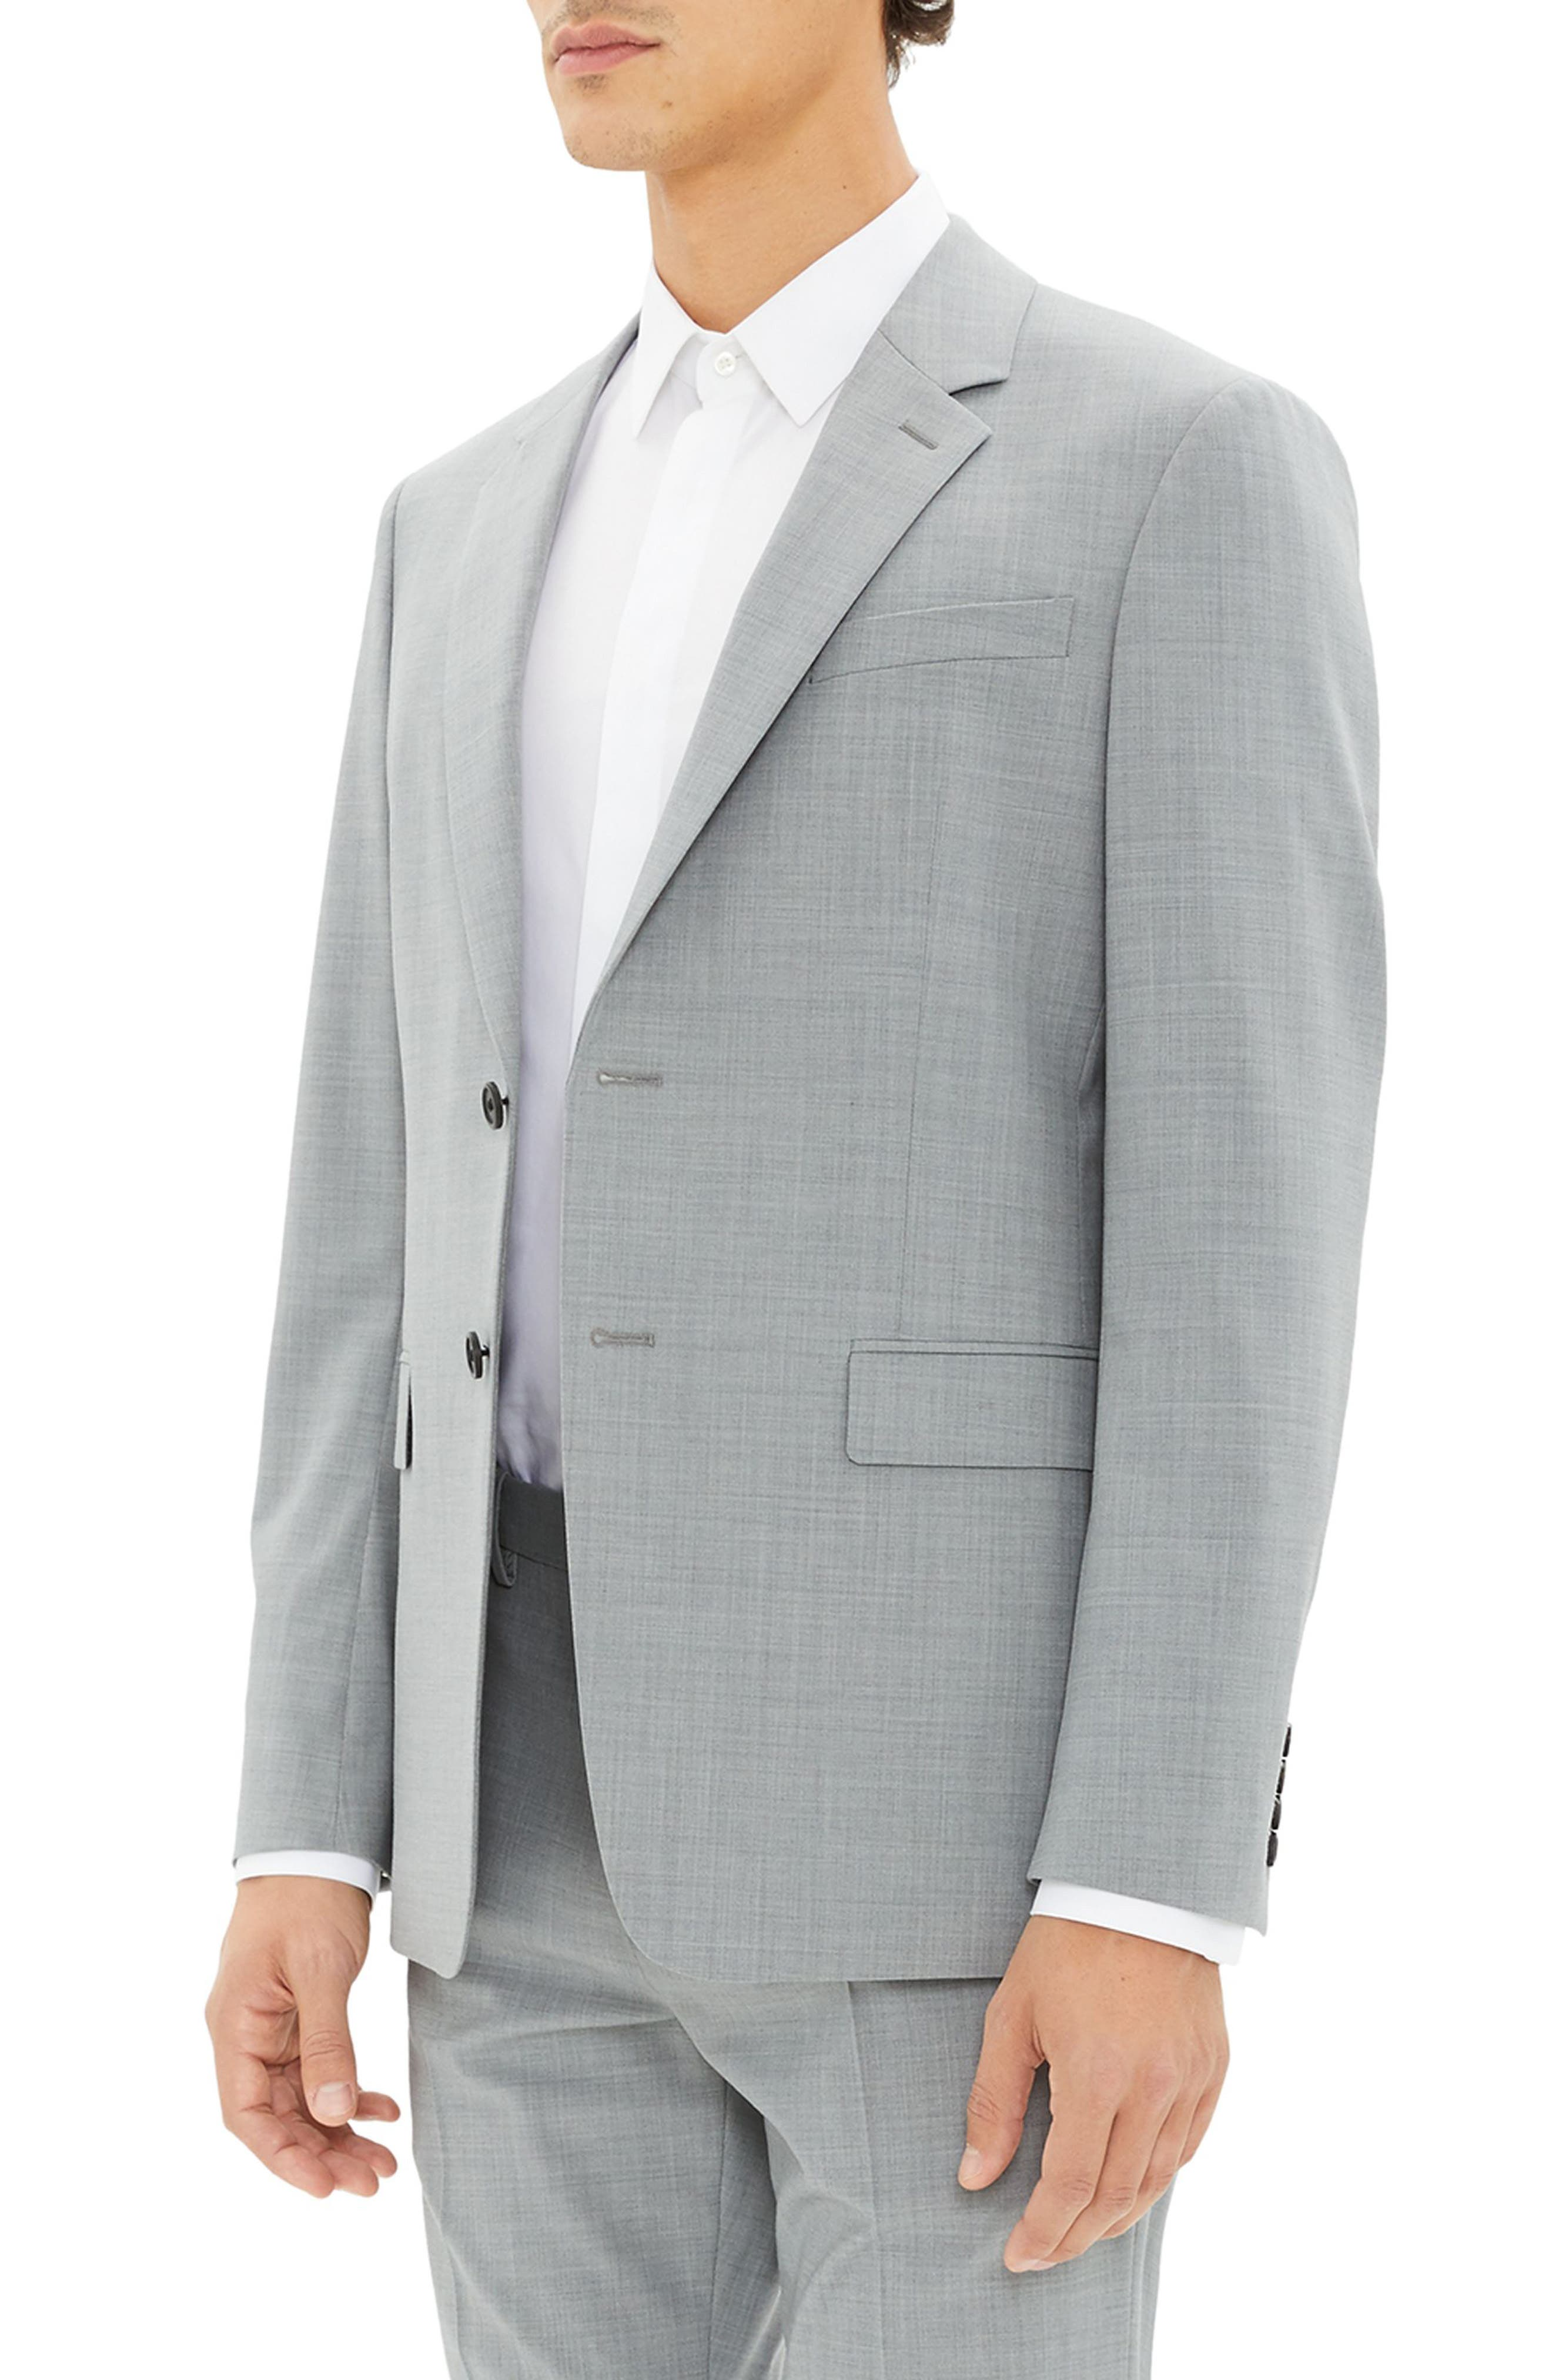 New Tailor Chambers Blazer,                             Alternate thumbnail 3, color,                             CHROME MELANGE